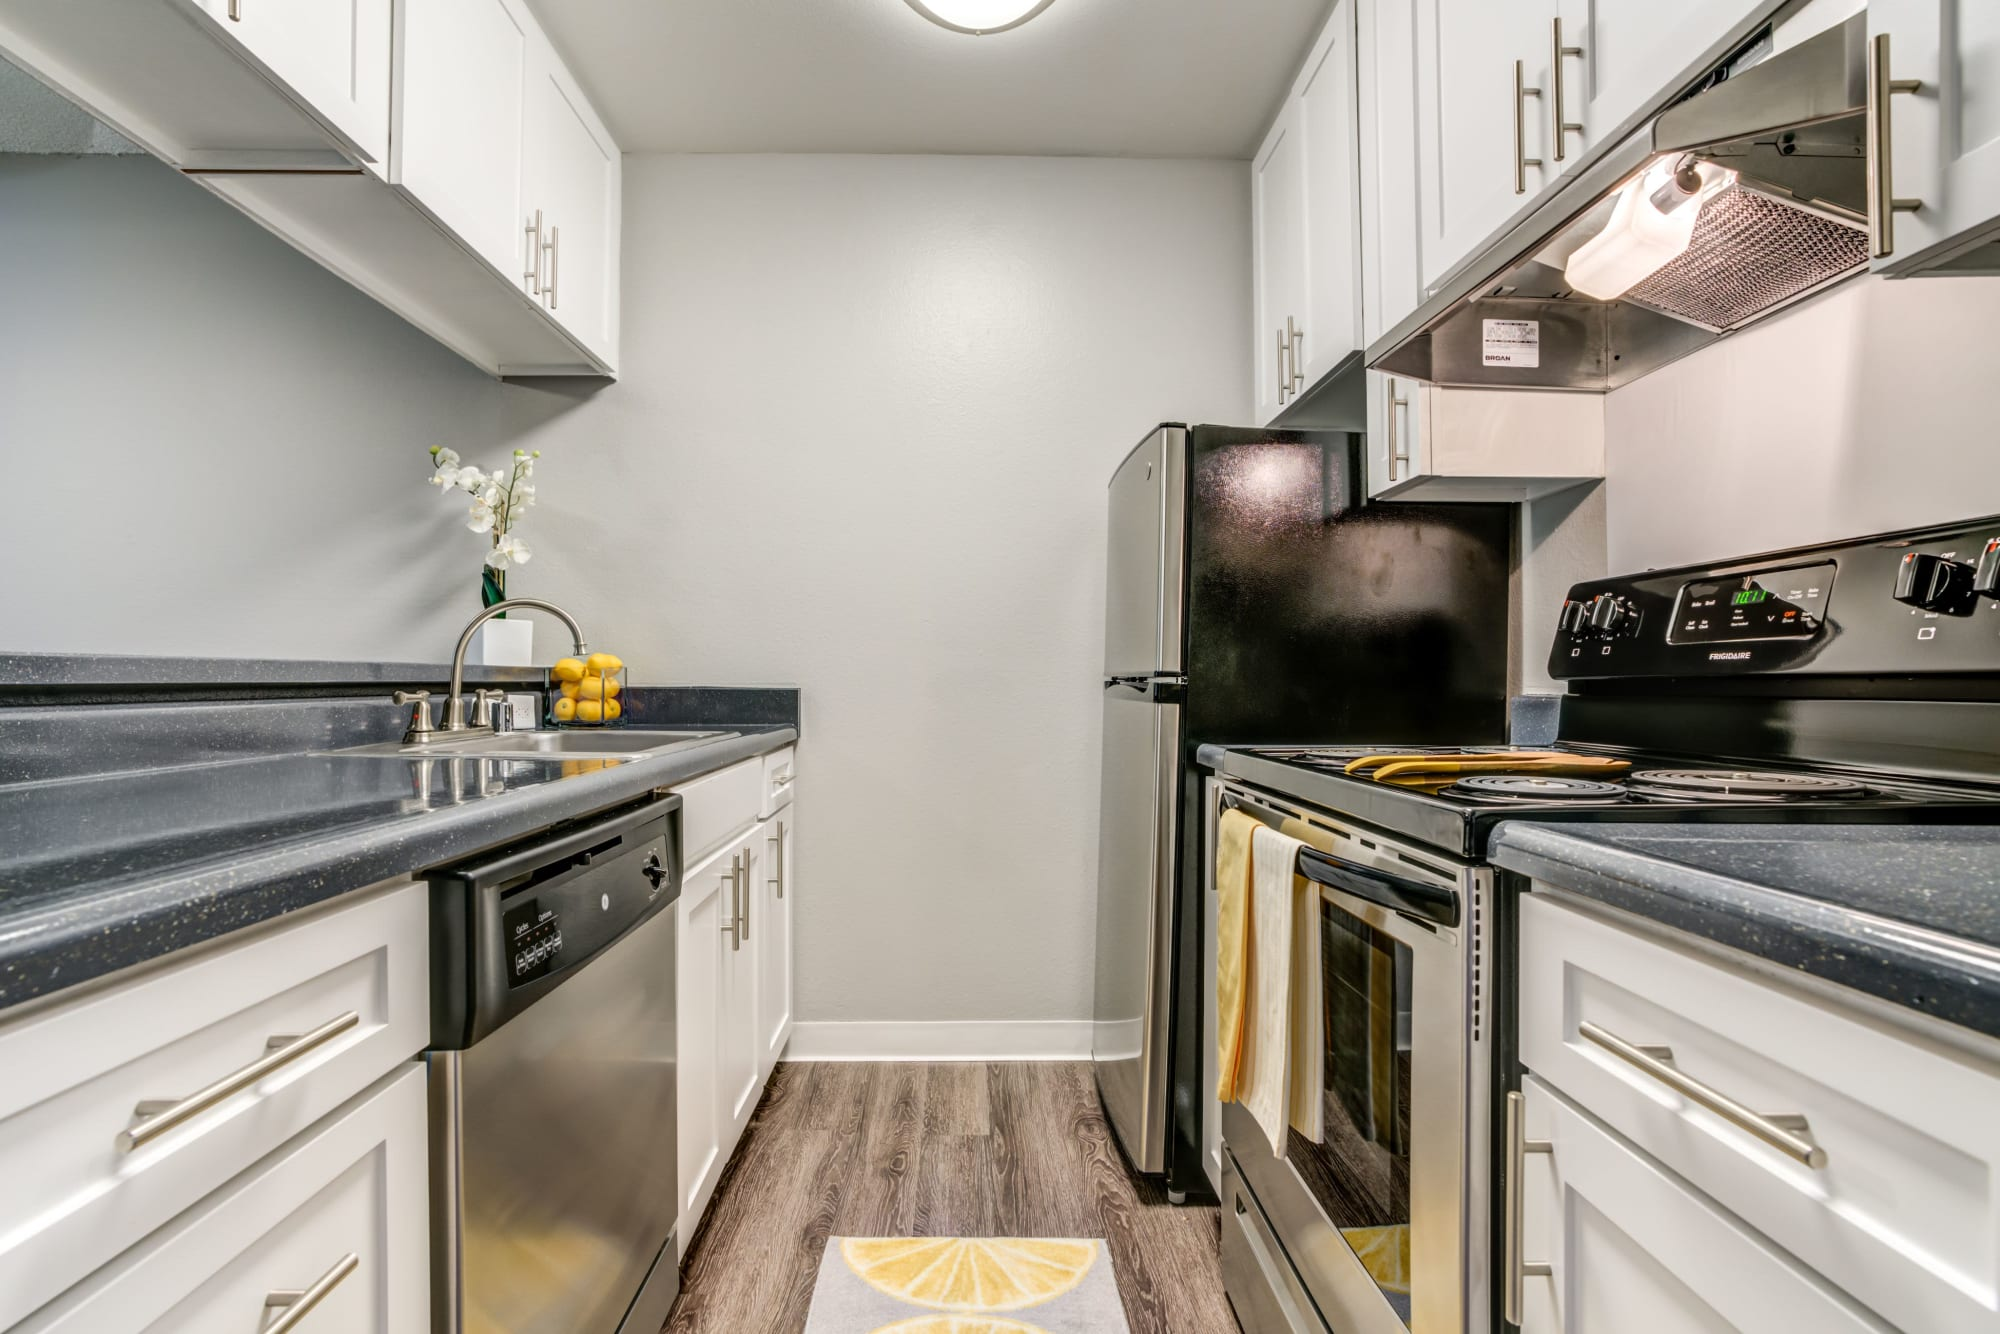 Renovated kitchen with white cabinets and stainless steel appliances at The Timbers Apartments in Hayward, California